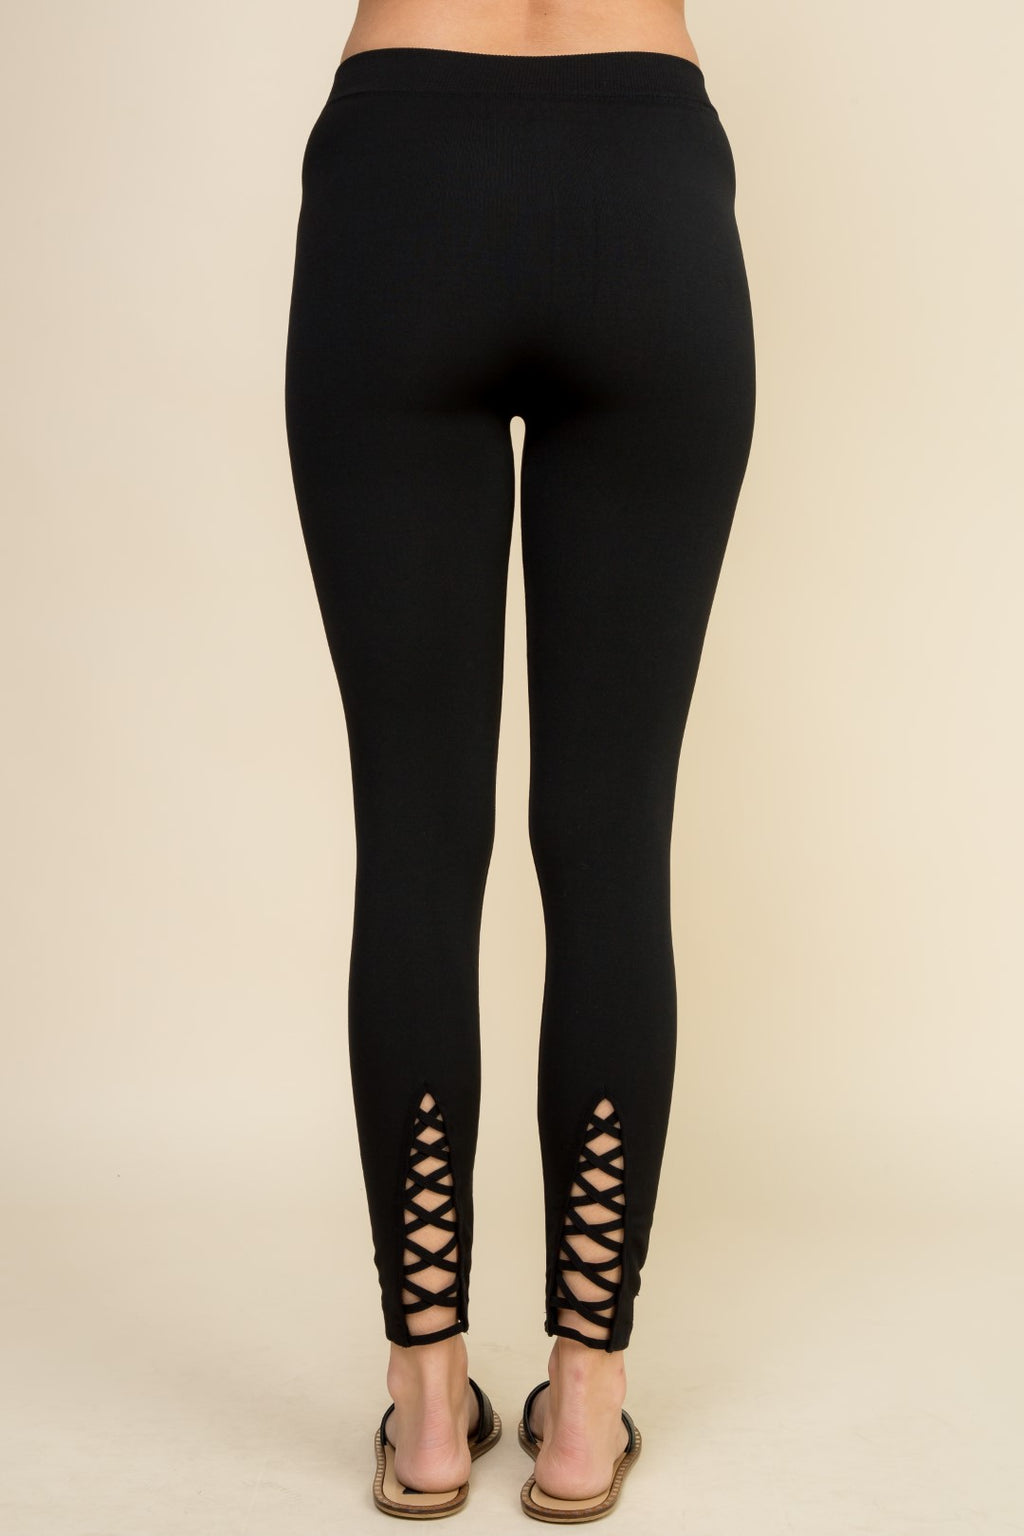 Black Strappy Cut Out Leggings - 19 Dollars Or Less